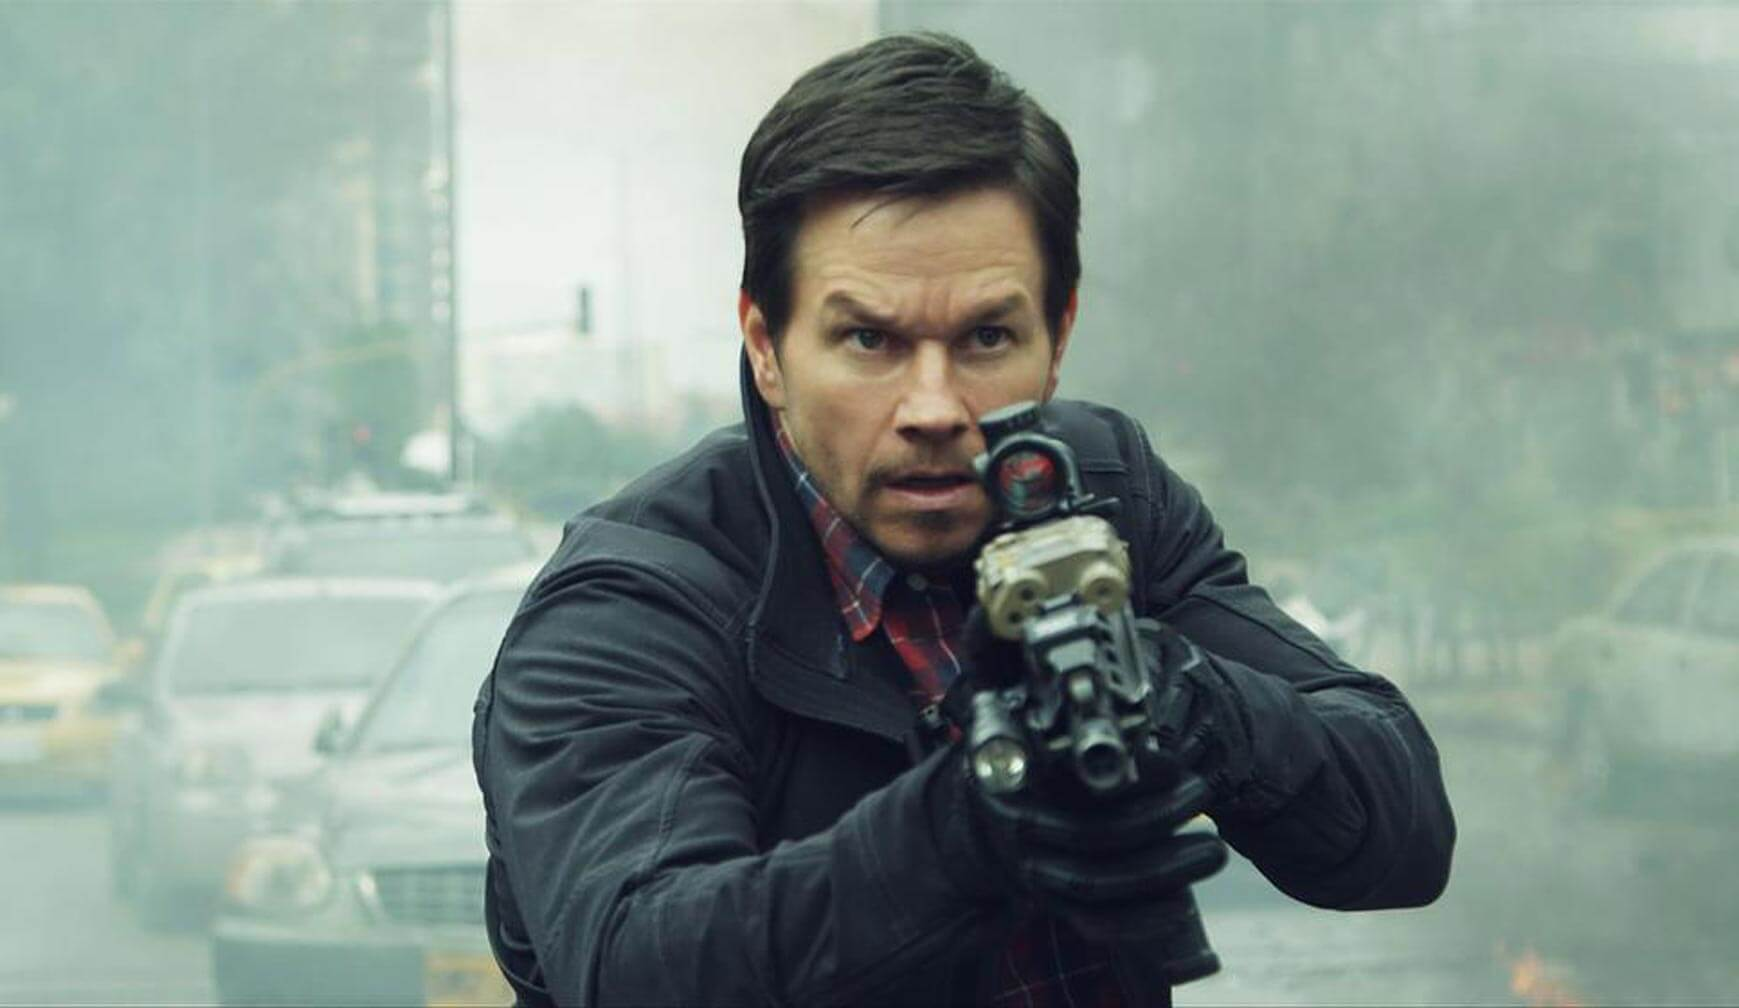 Mark Wahlberg Has A Very Dangerous Package To Deliver In The First Trailer For 'Mile 22'